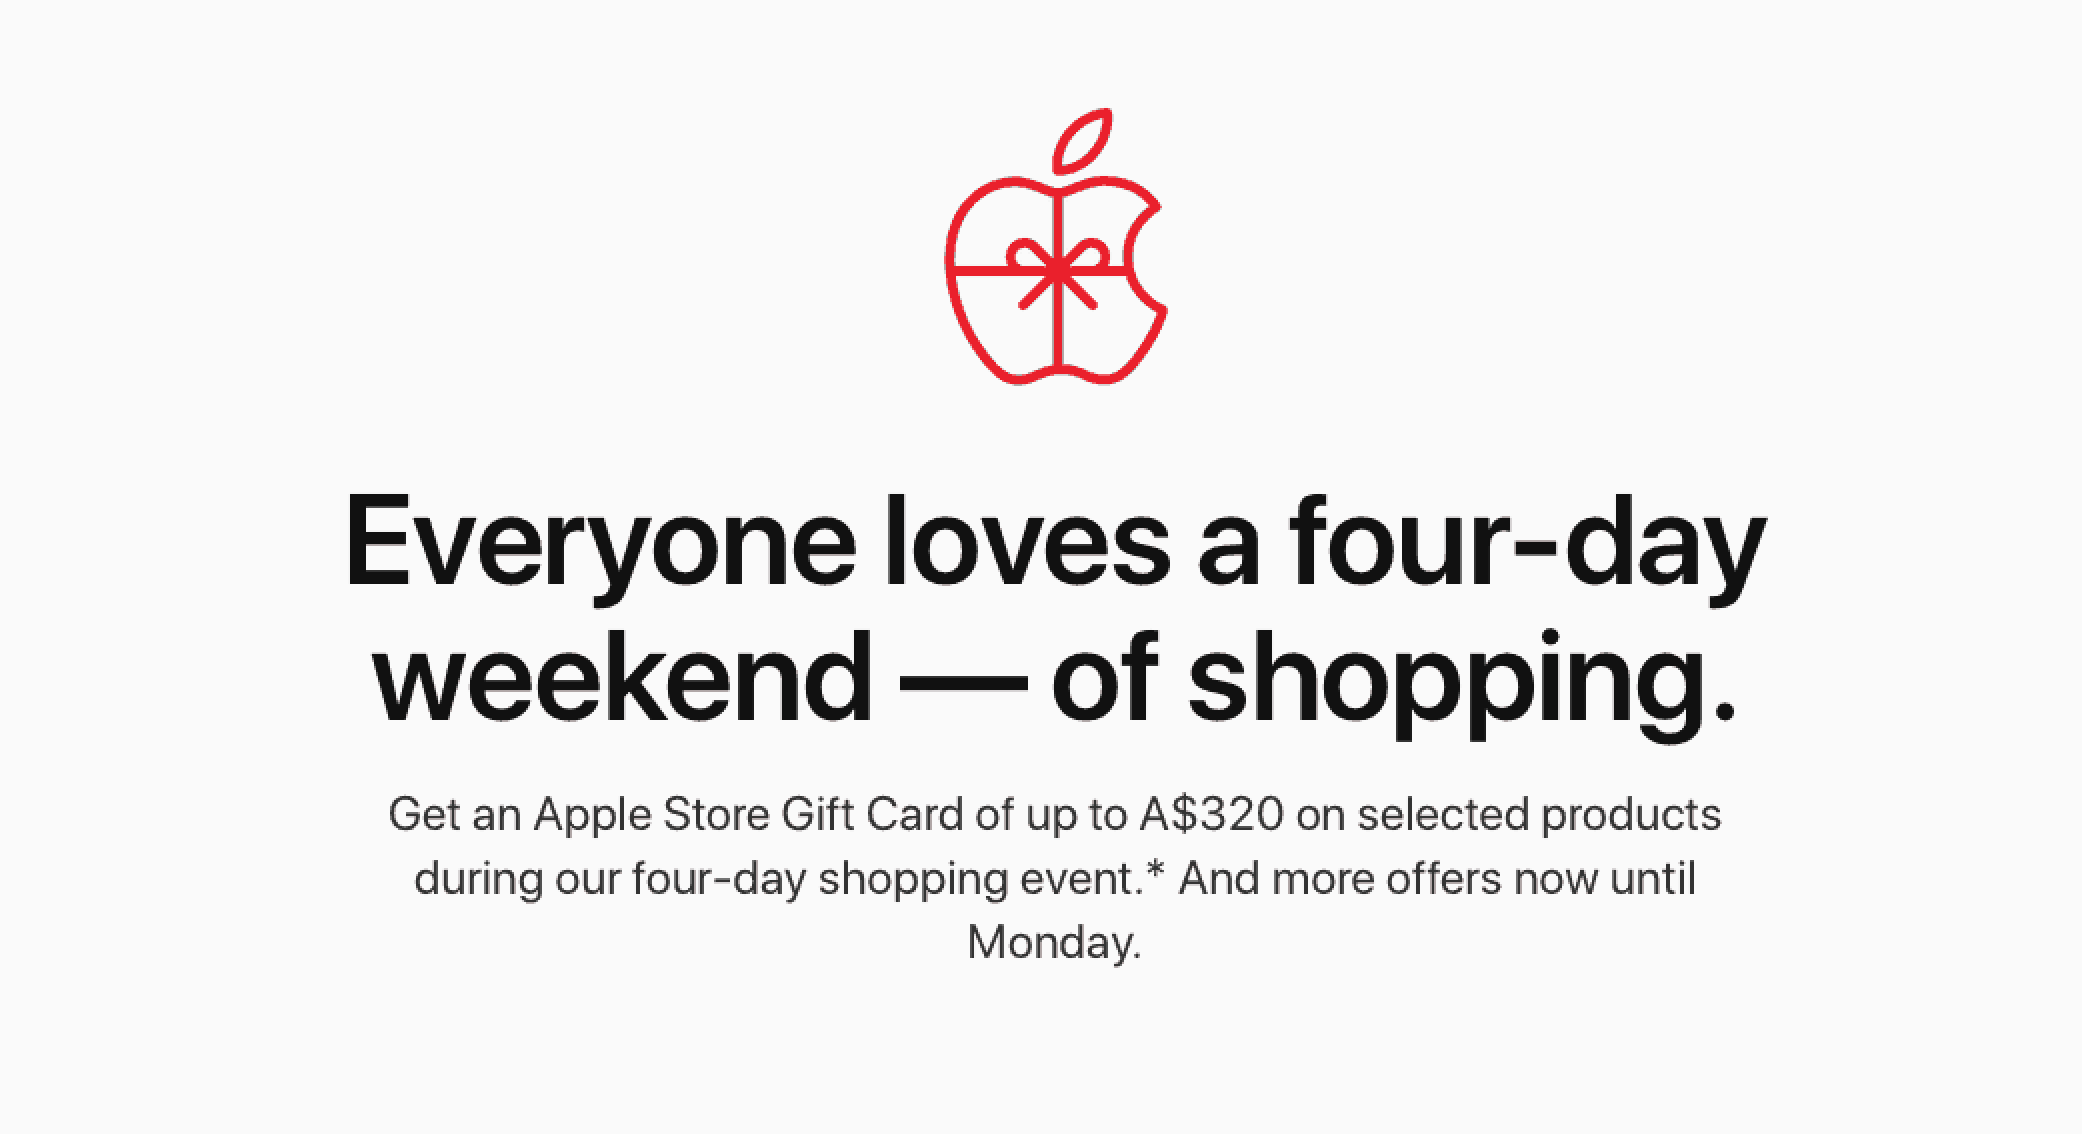 This is the gift card offer provided by Apple for black Friday deals.